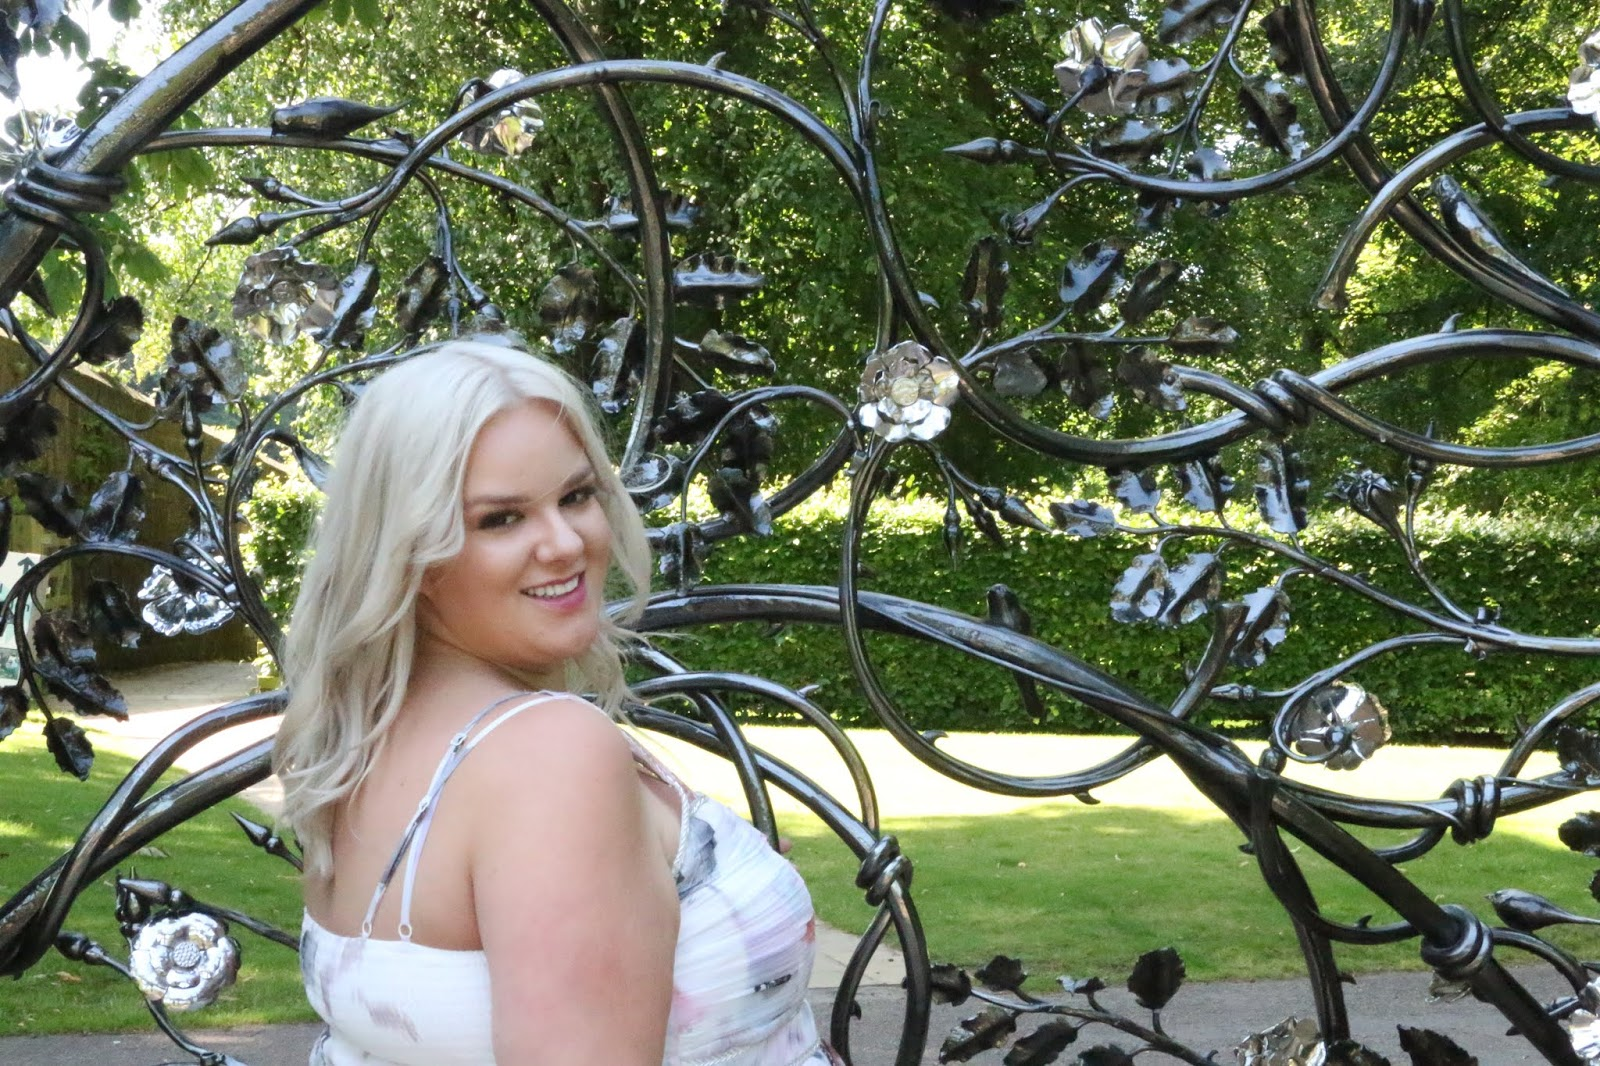 Prom Night Planning & Getting Ready Tips by UK Plus Size Fashion Blogger WhatLauraLoves